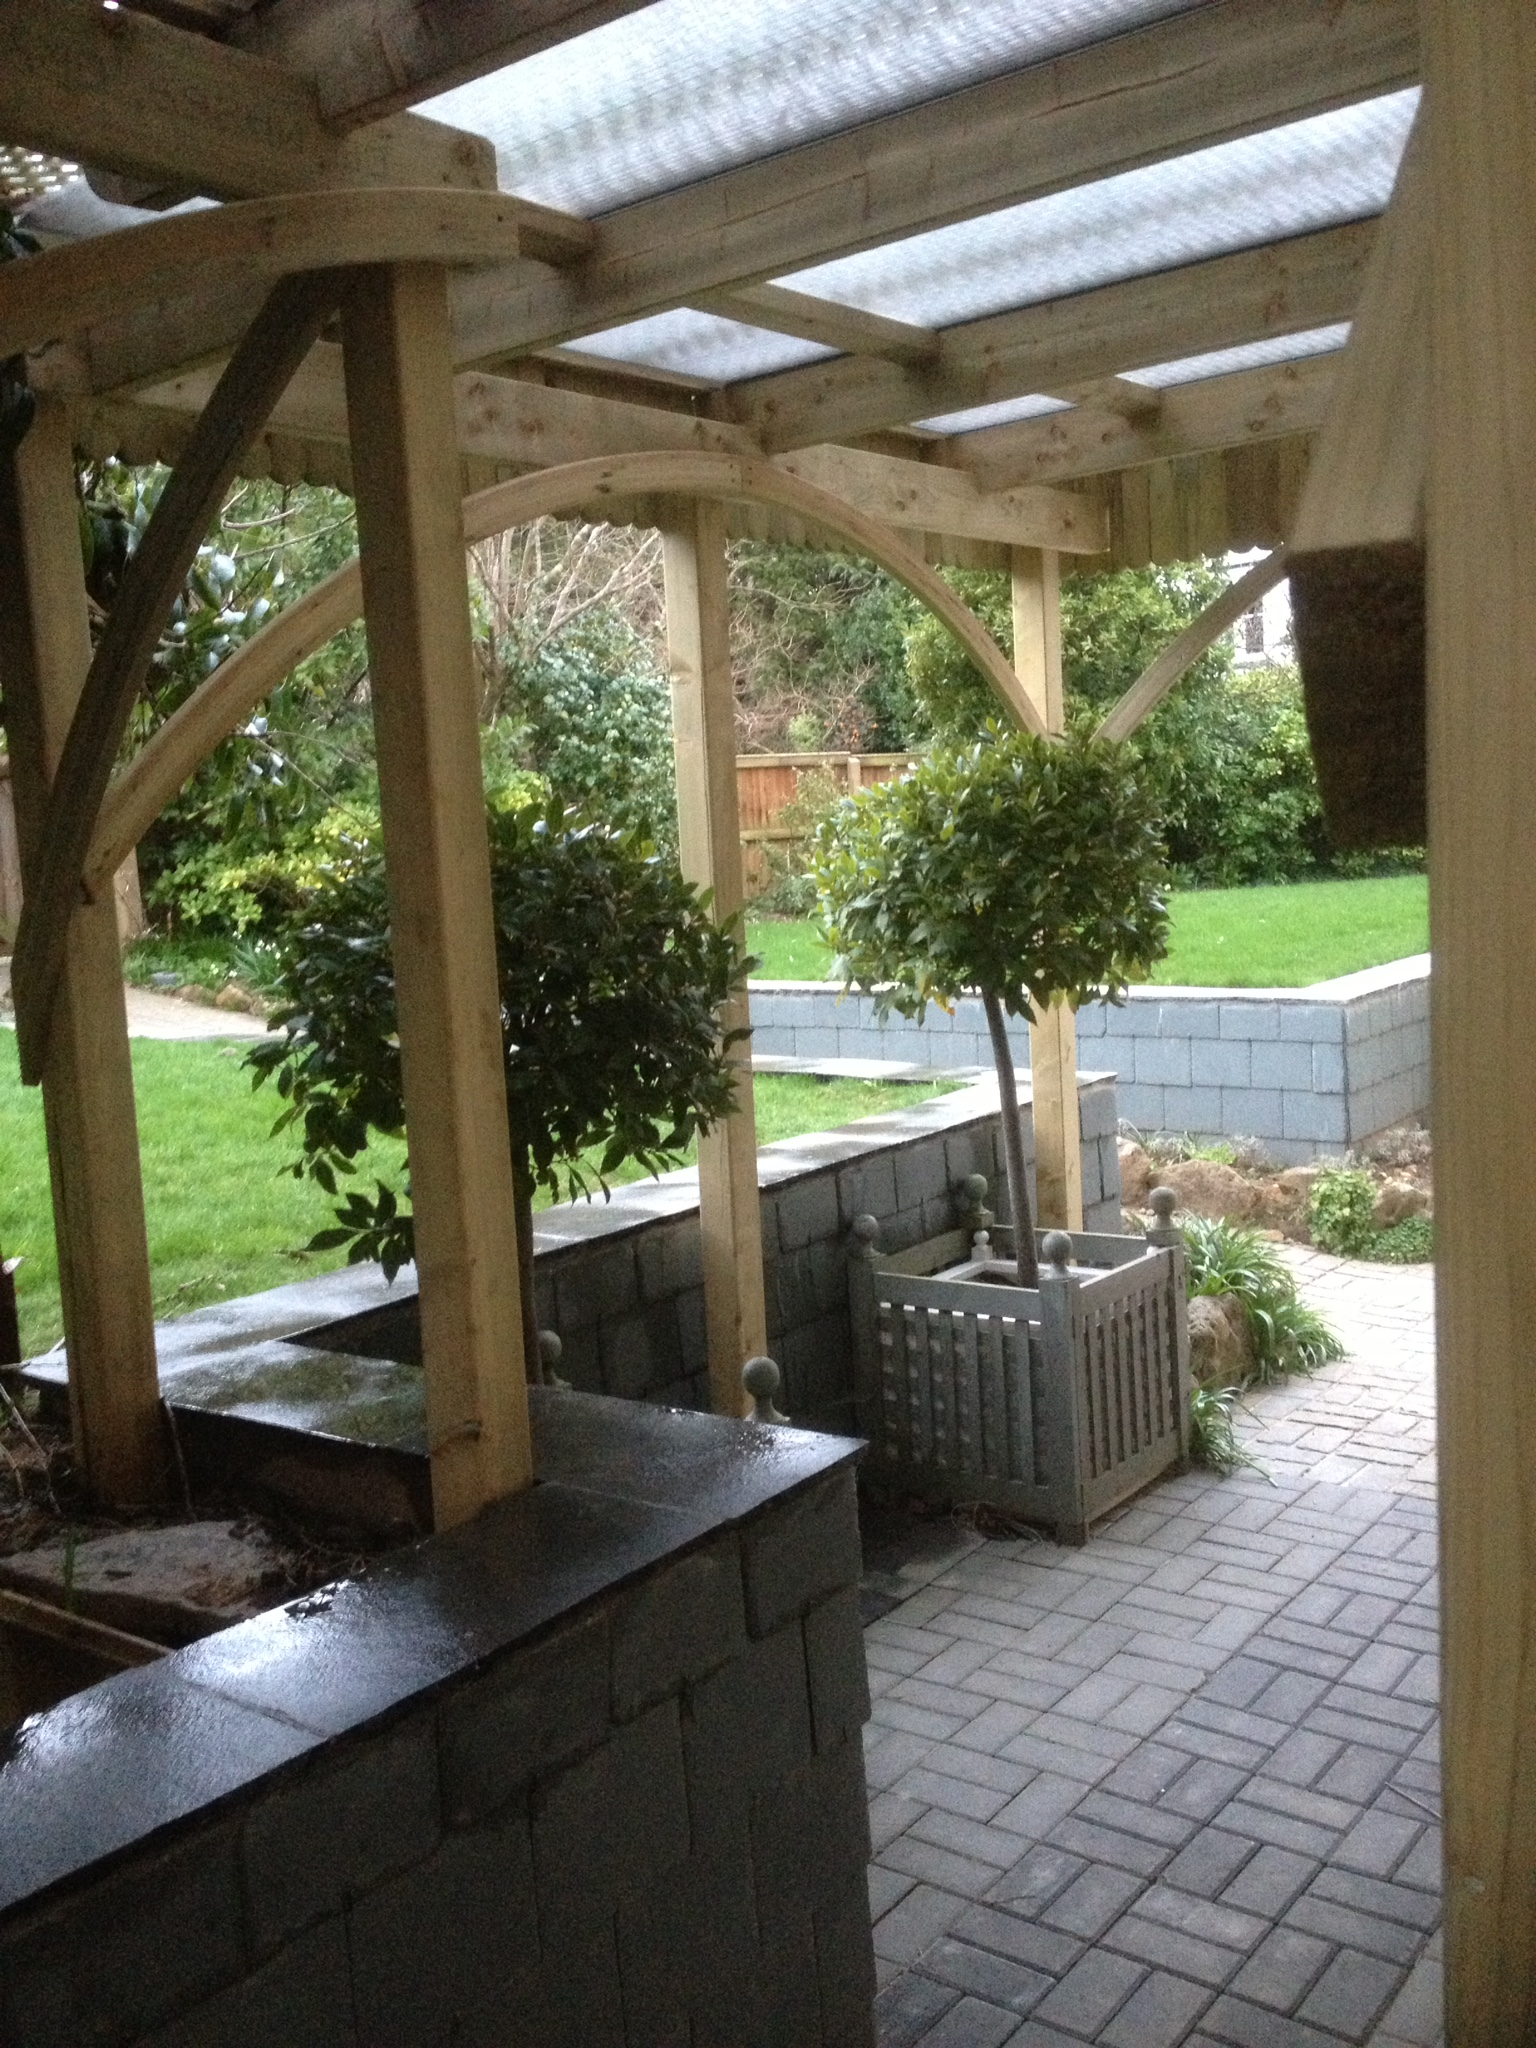 The rest of the completed patio